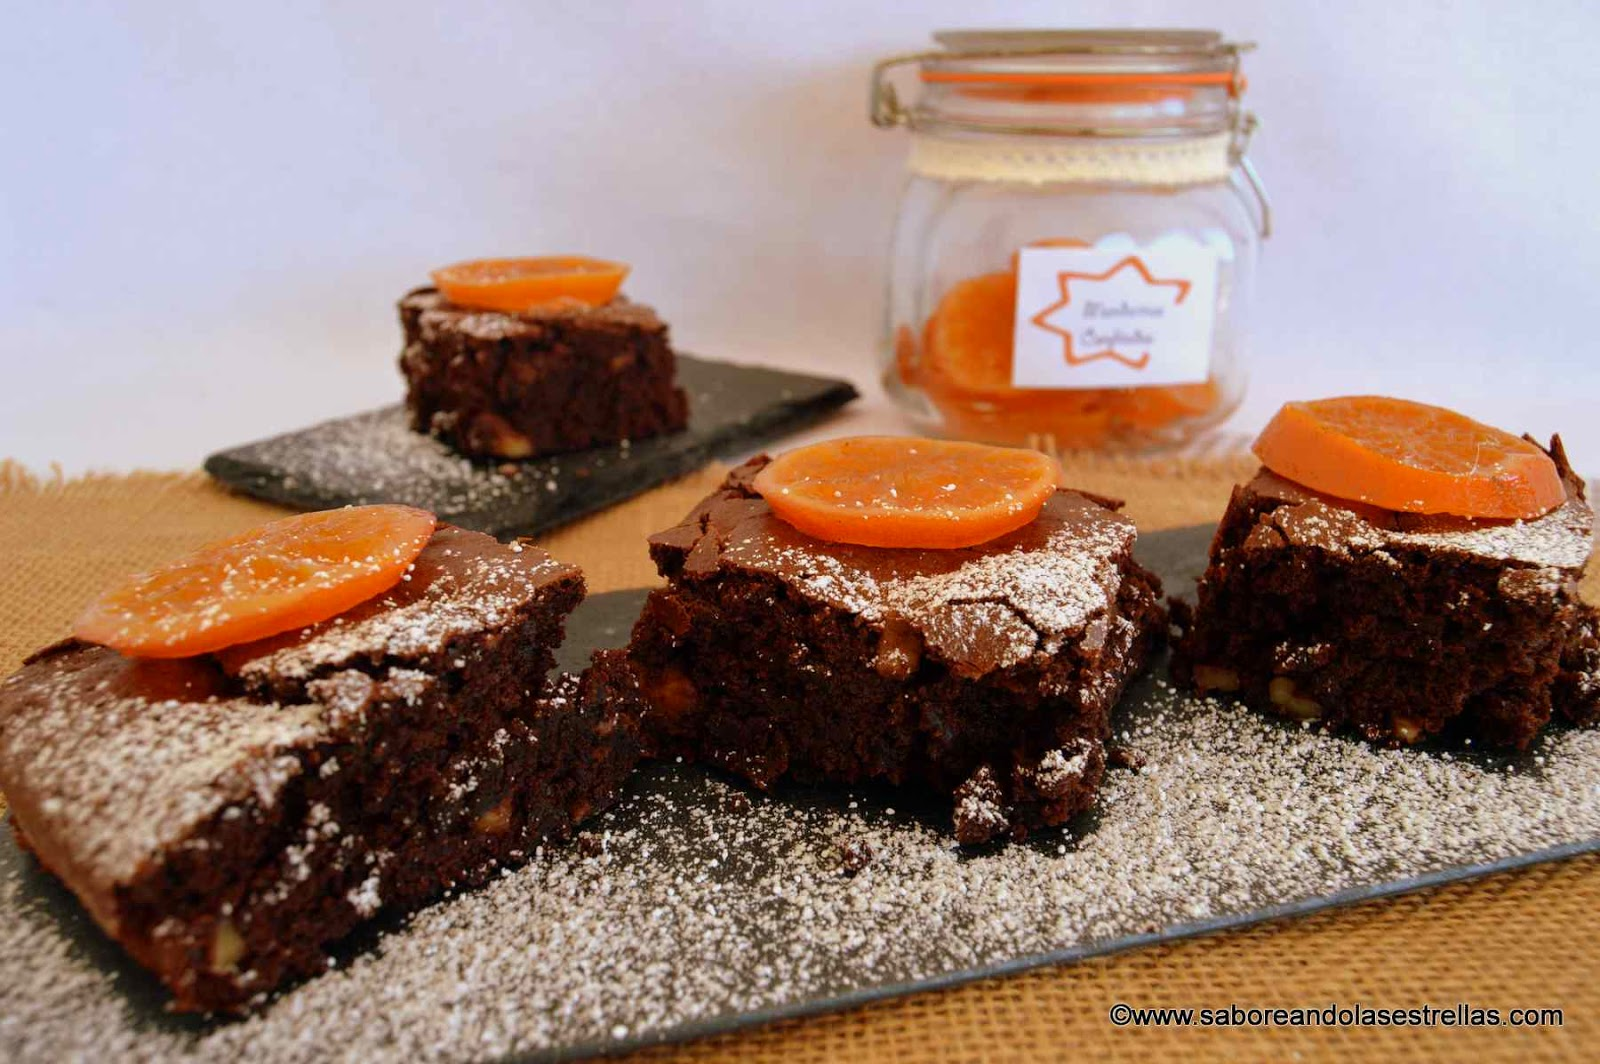 Brownie con nueces y mandarinas confitadas